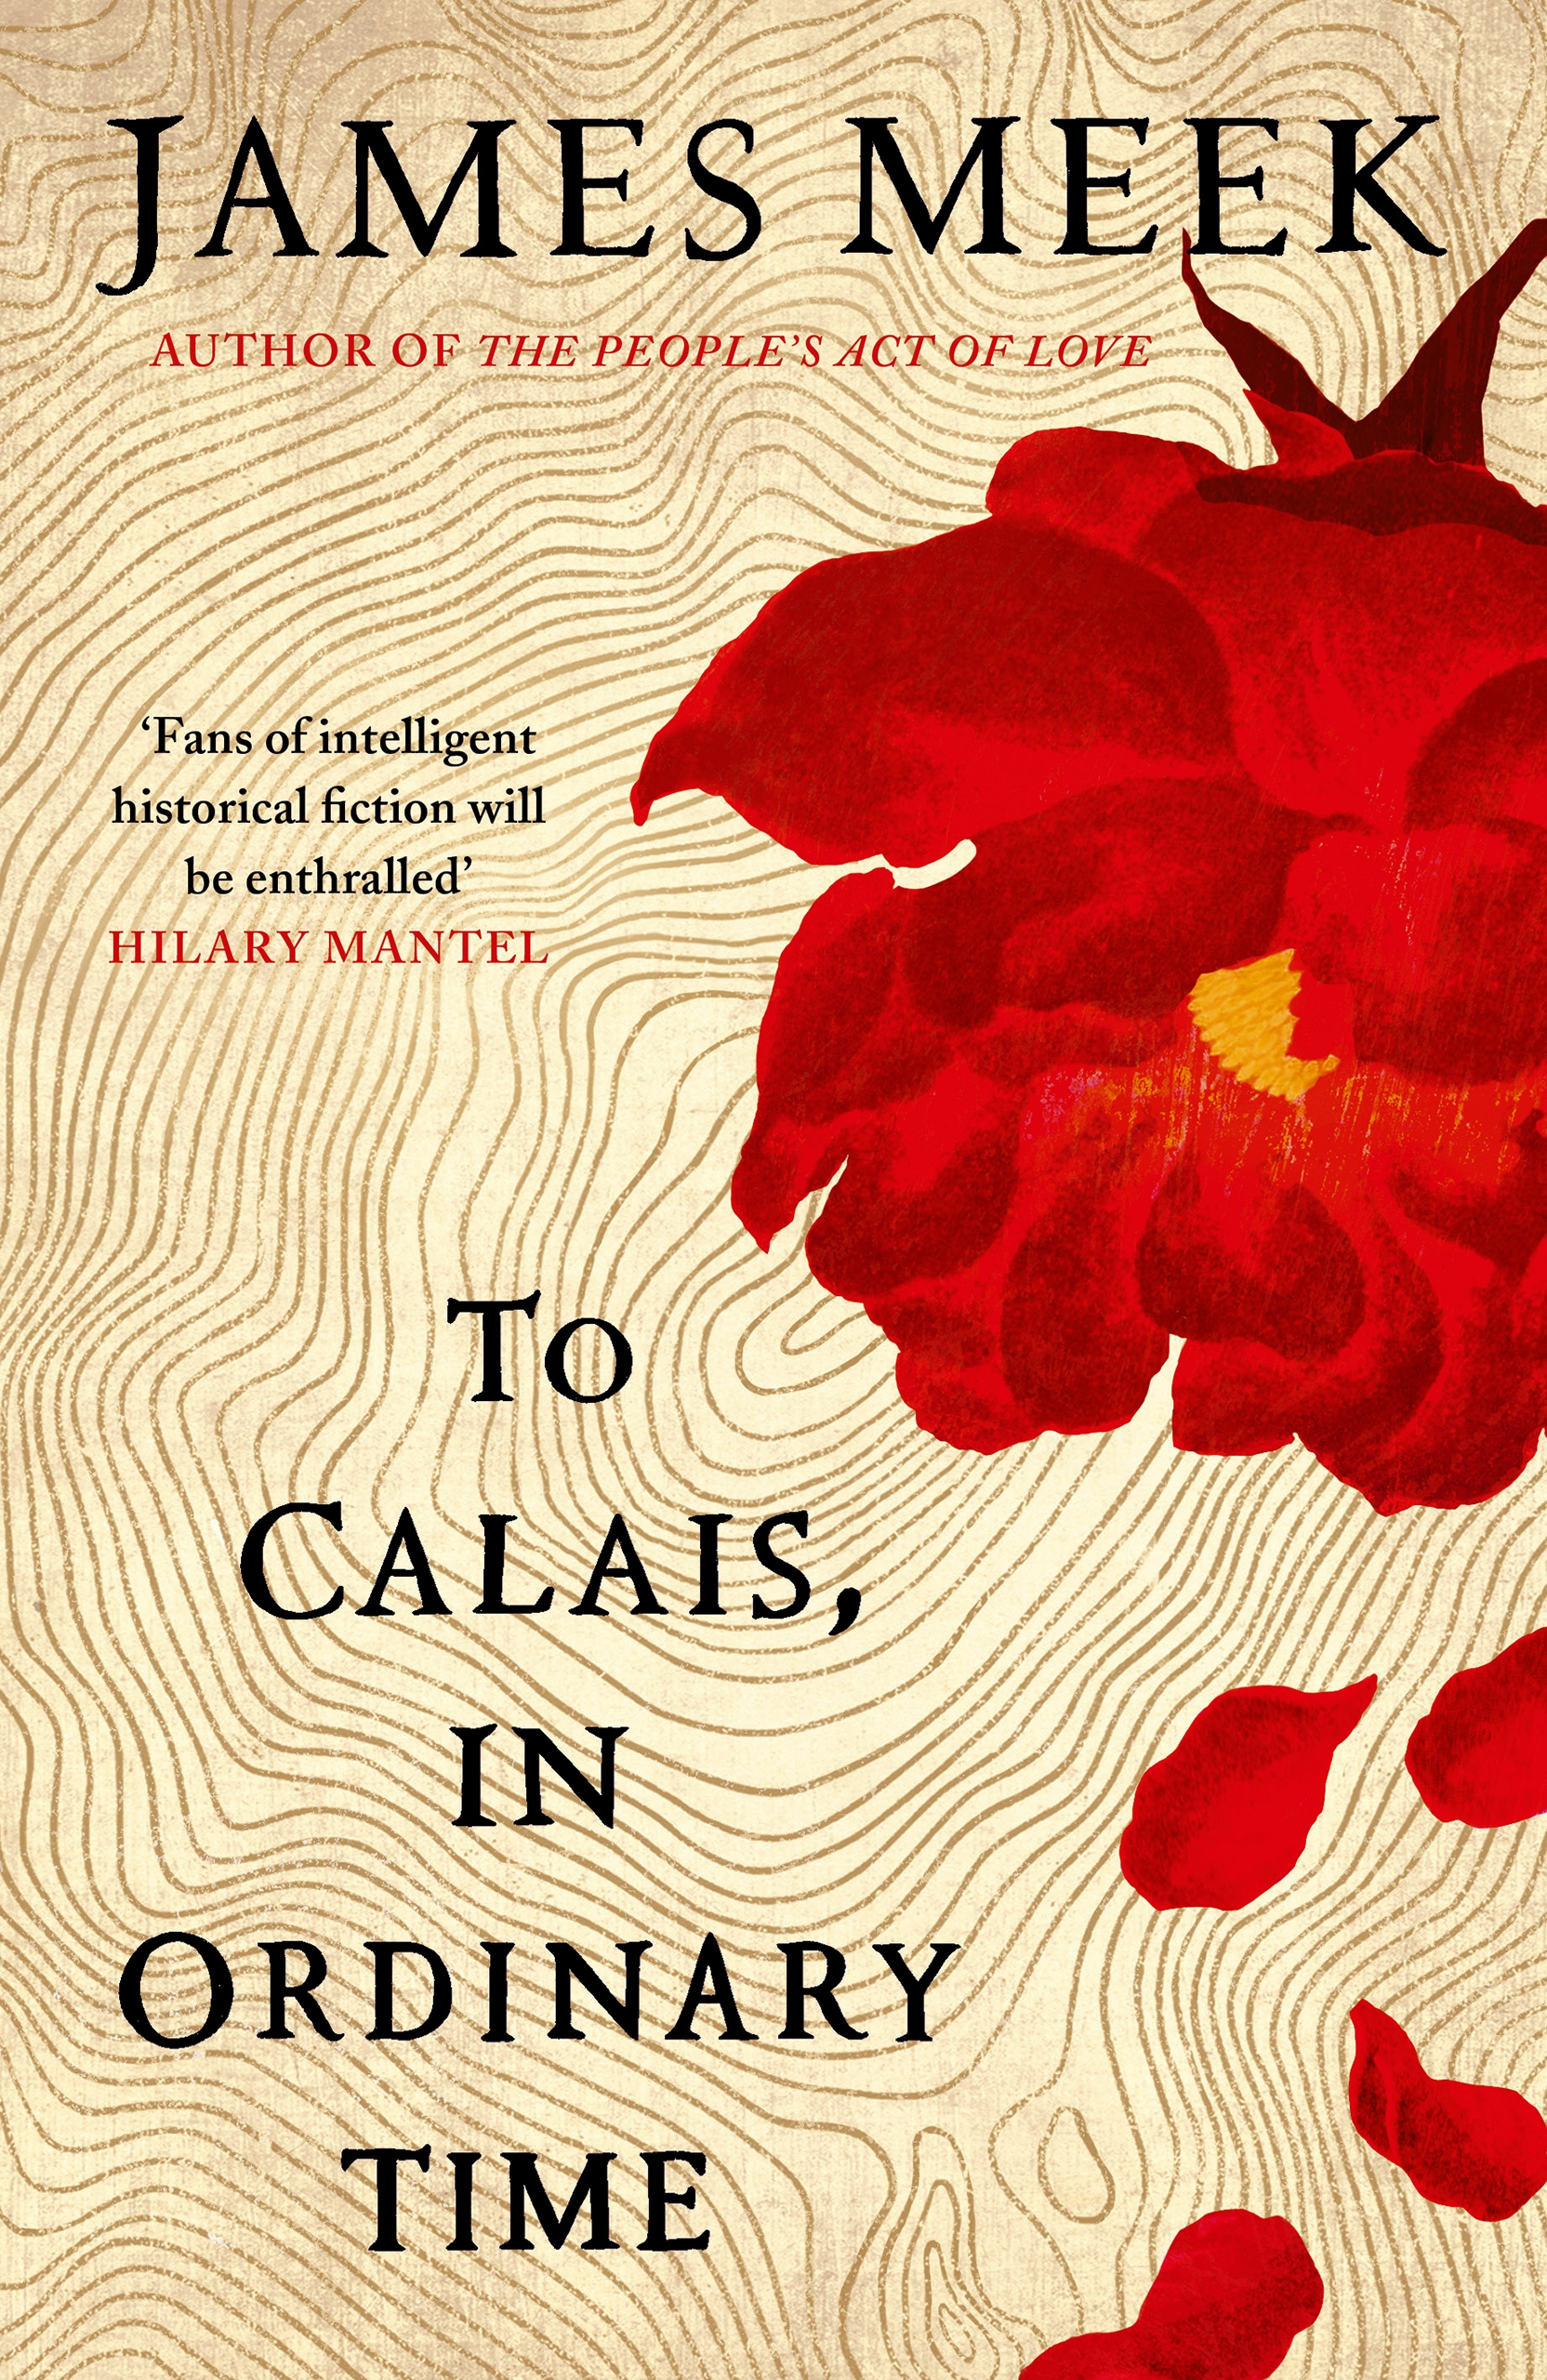 Featured Book - To Calais, In Ordinary Time by James Meek (Canongate, 2019)